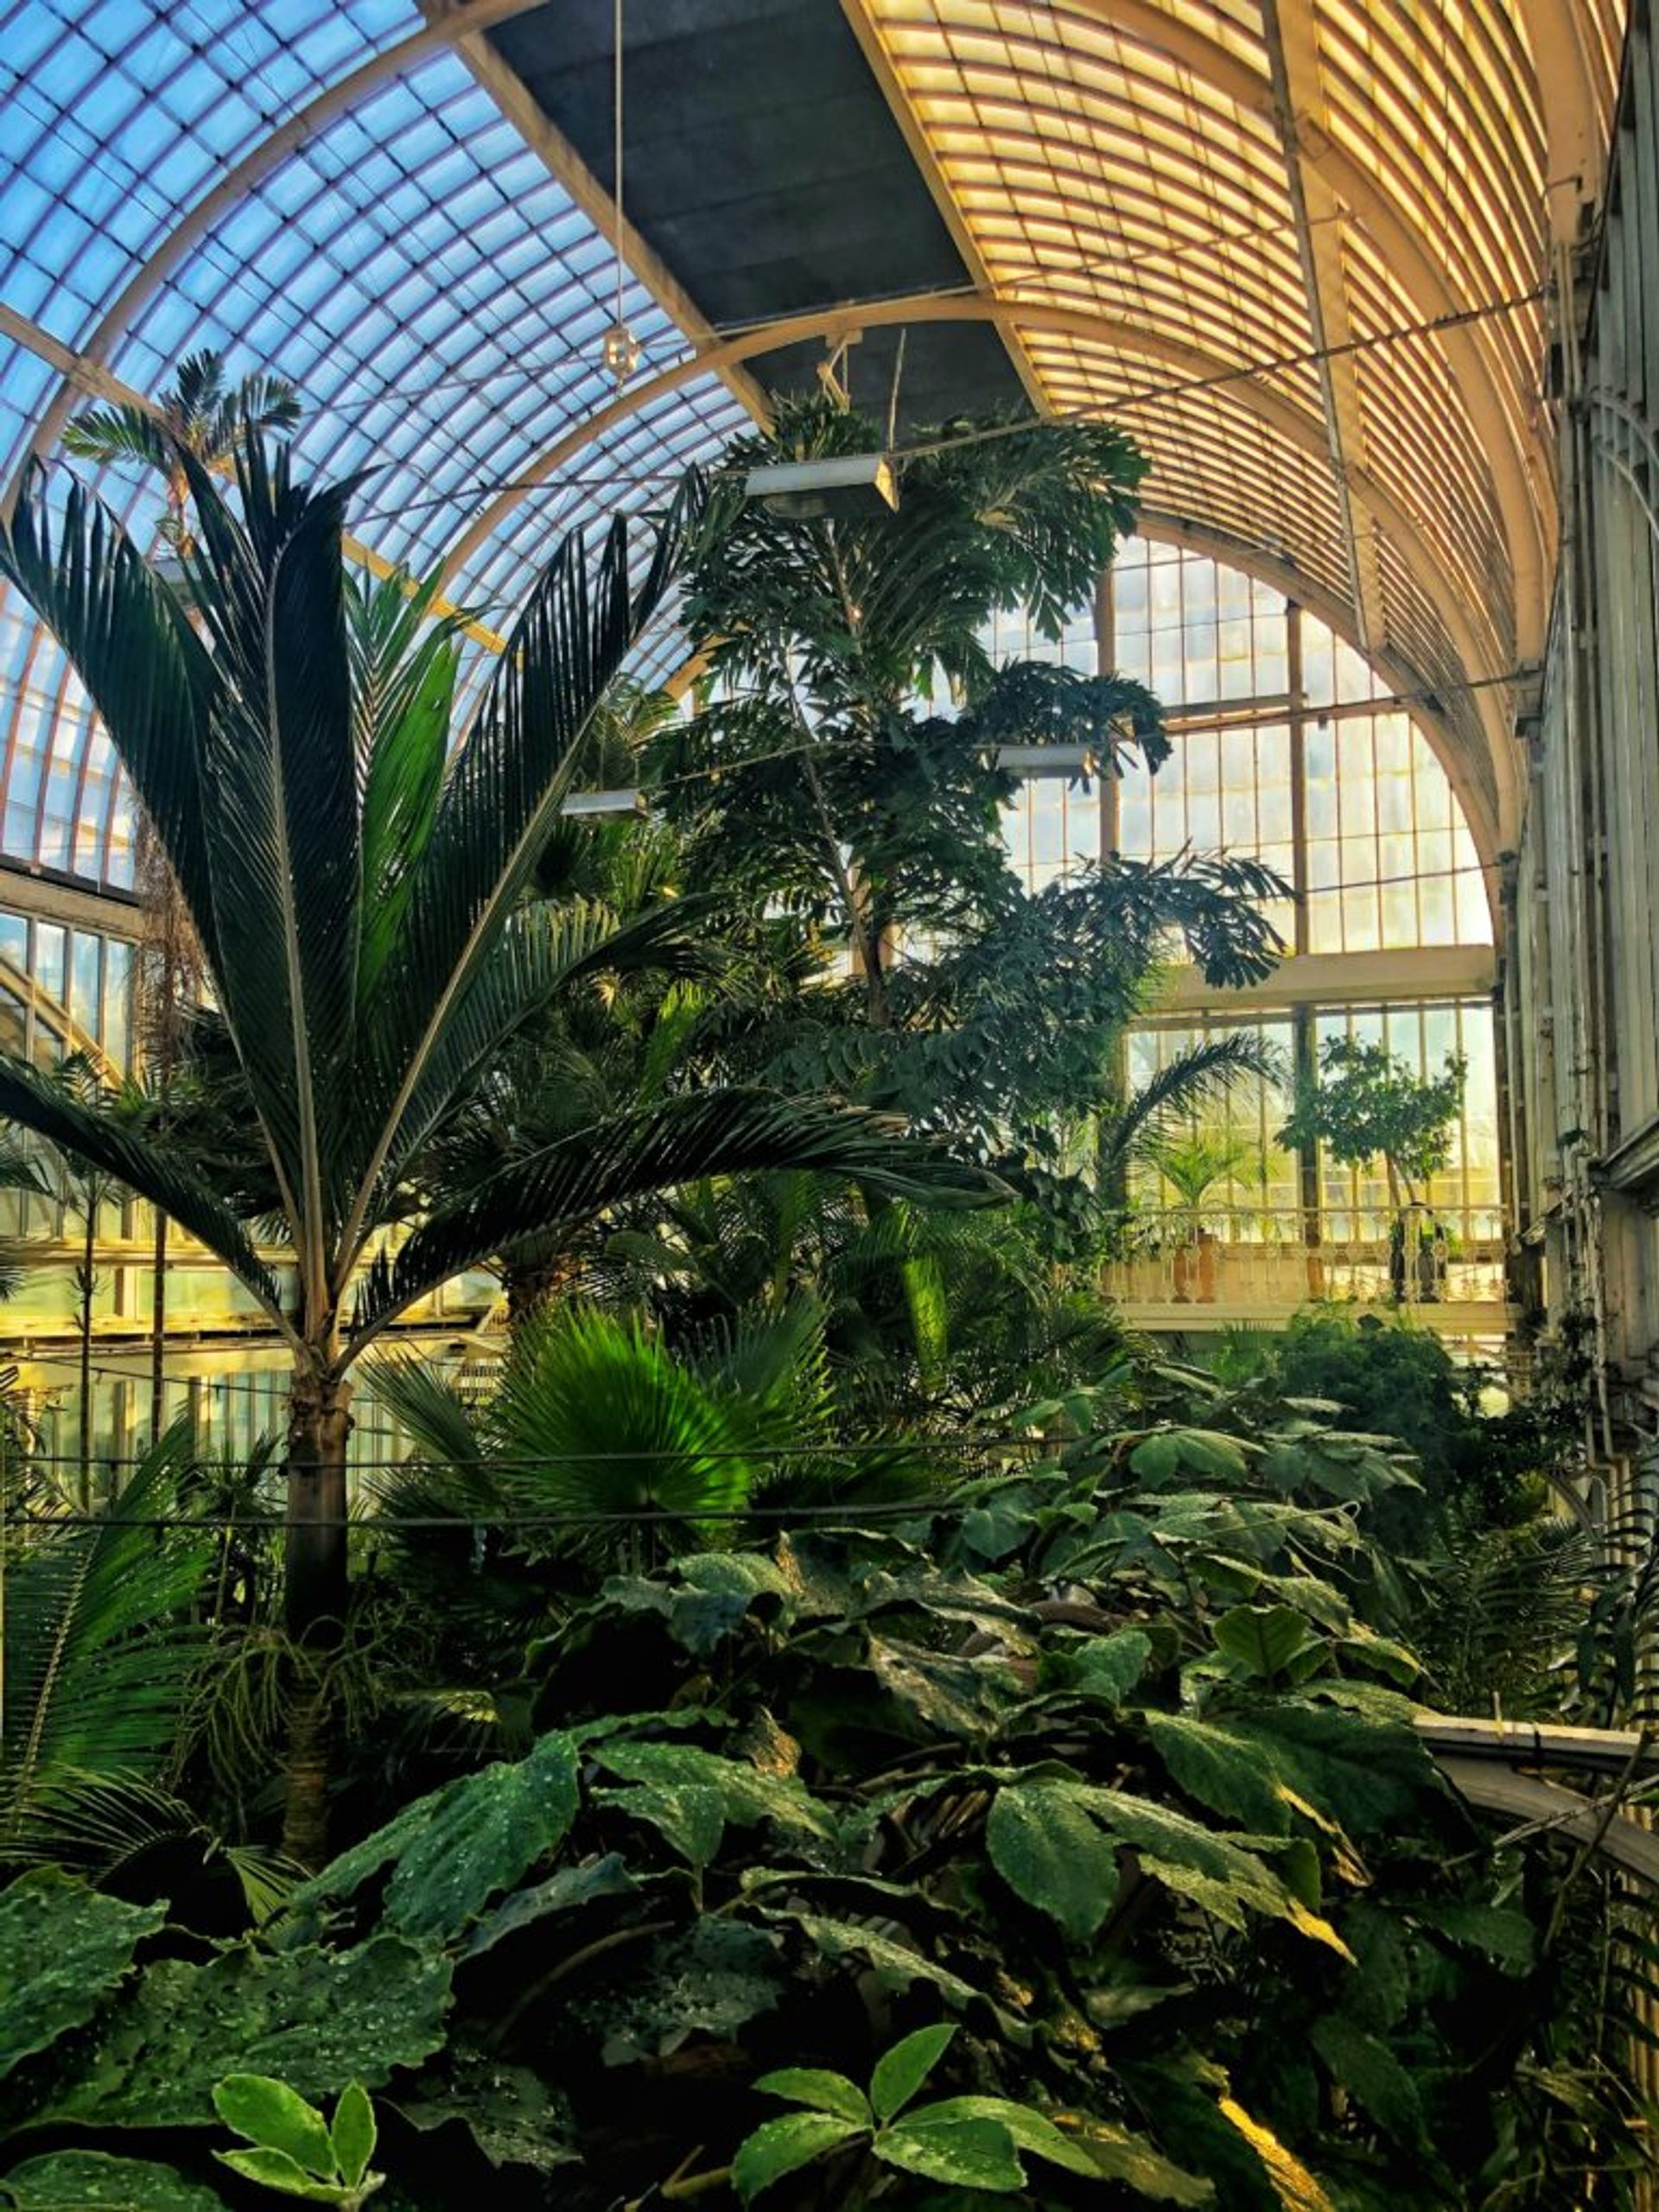 Palm trees in a large greenhouse.